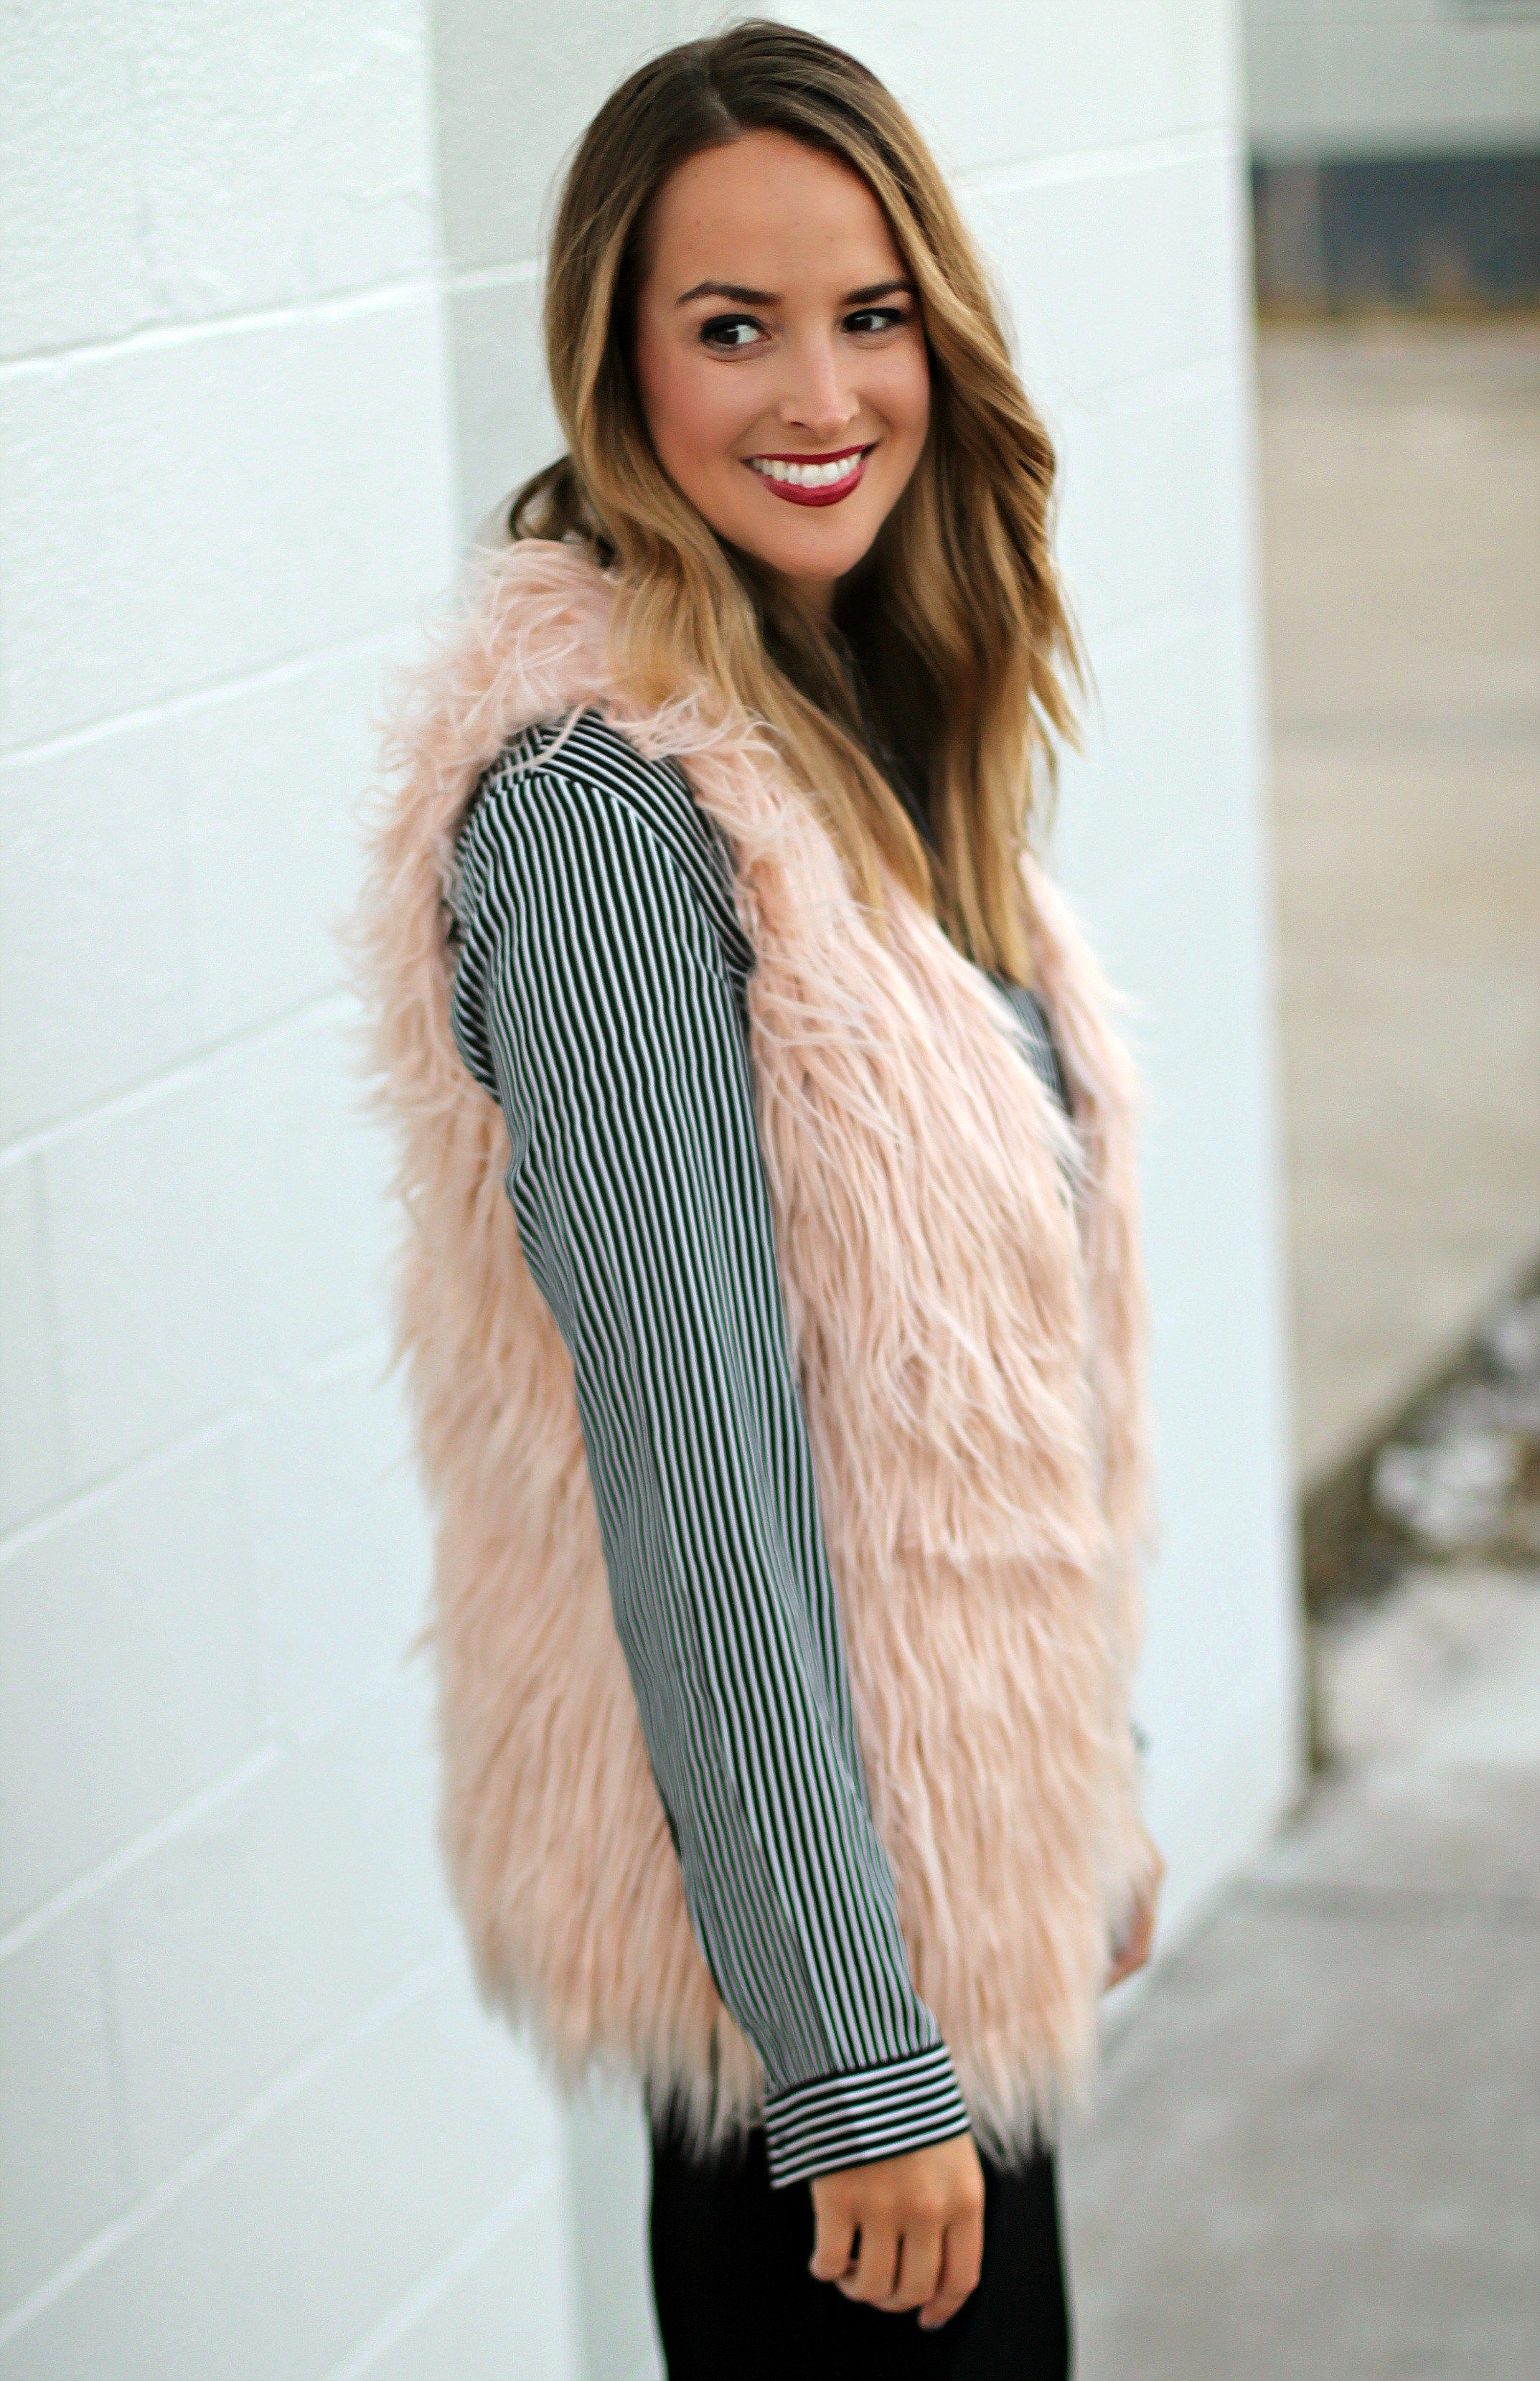 b8e559a94836c Pink Faux Fur Vest Faux Fur For The Holidays  fallstyle  fallfashion   styleideas  styleinspiration  outfit  outfitideas  casualoutfit   falloutfit ...